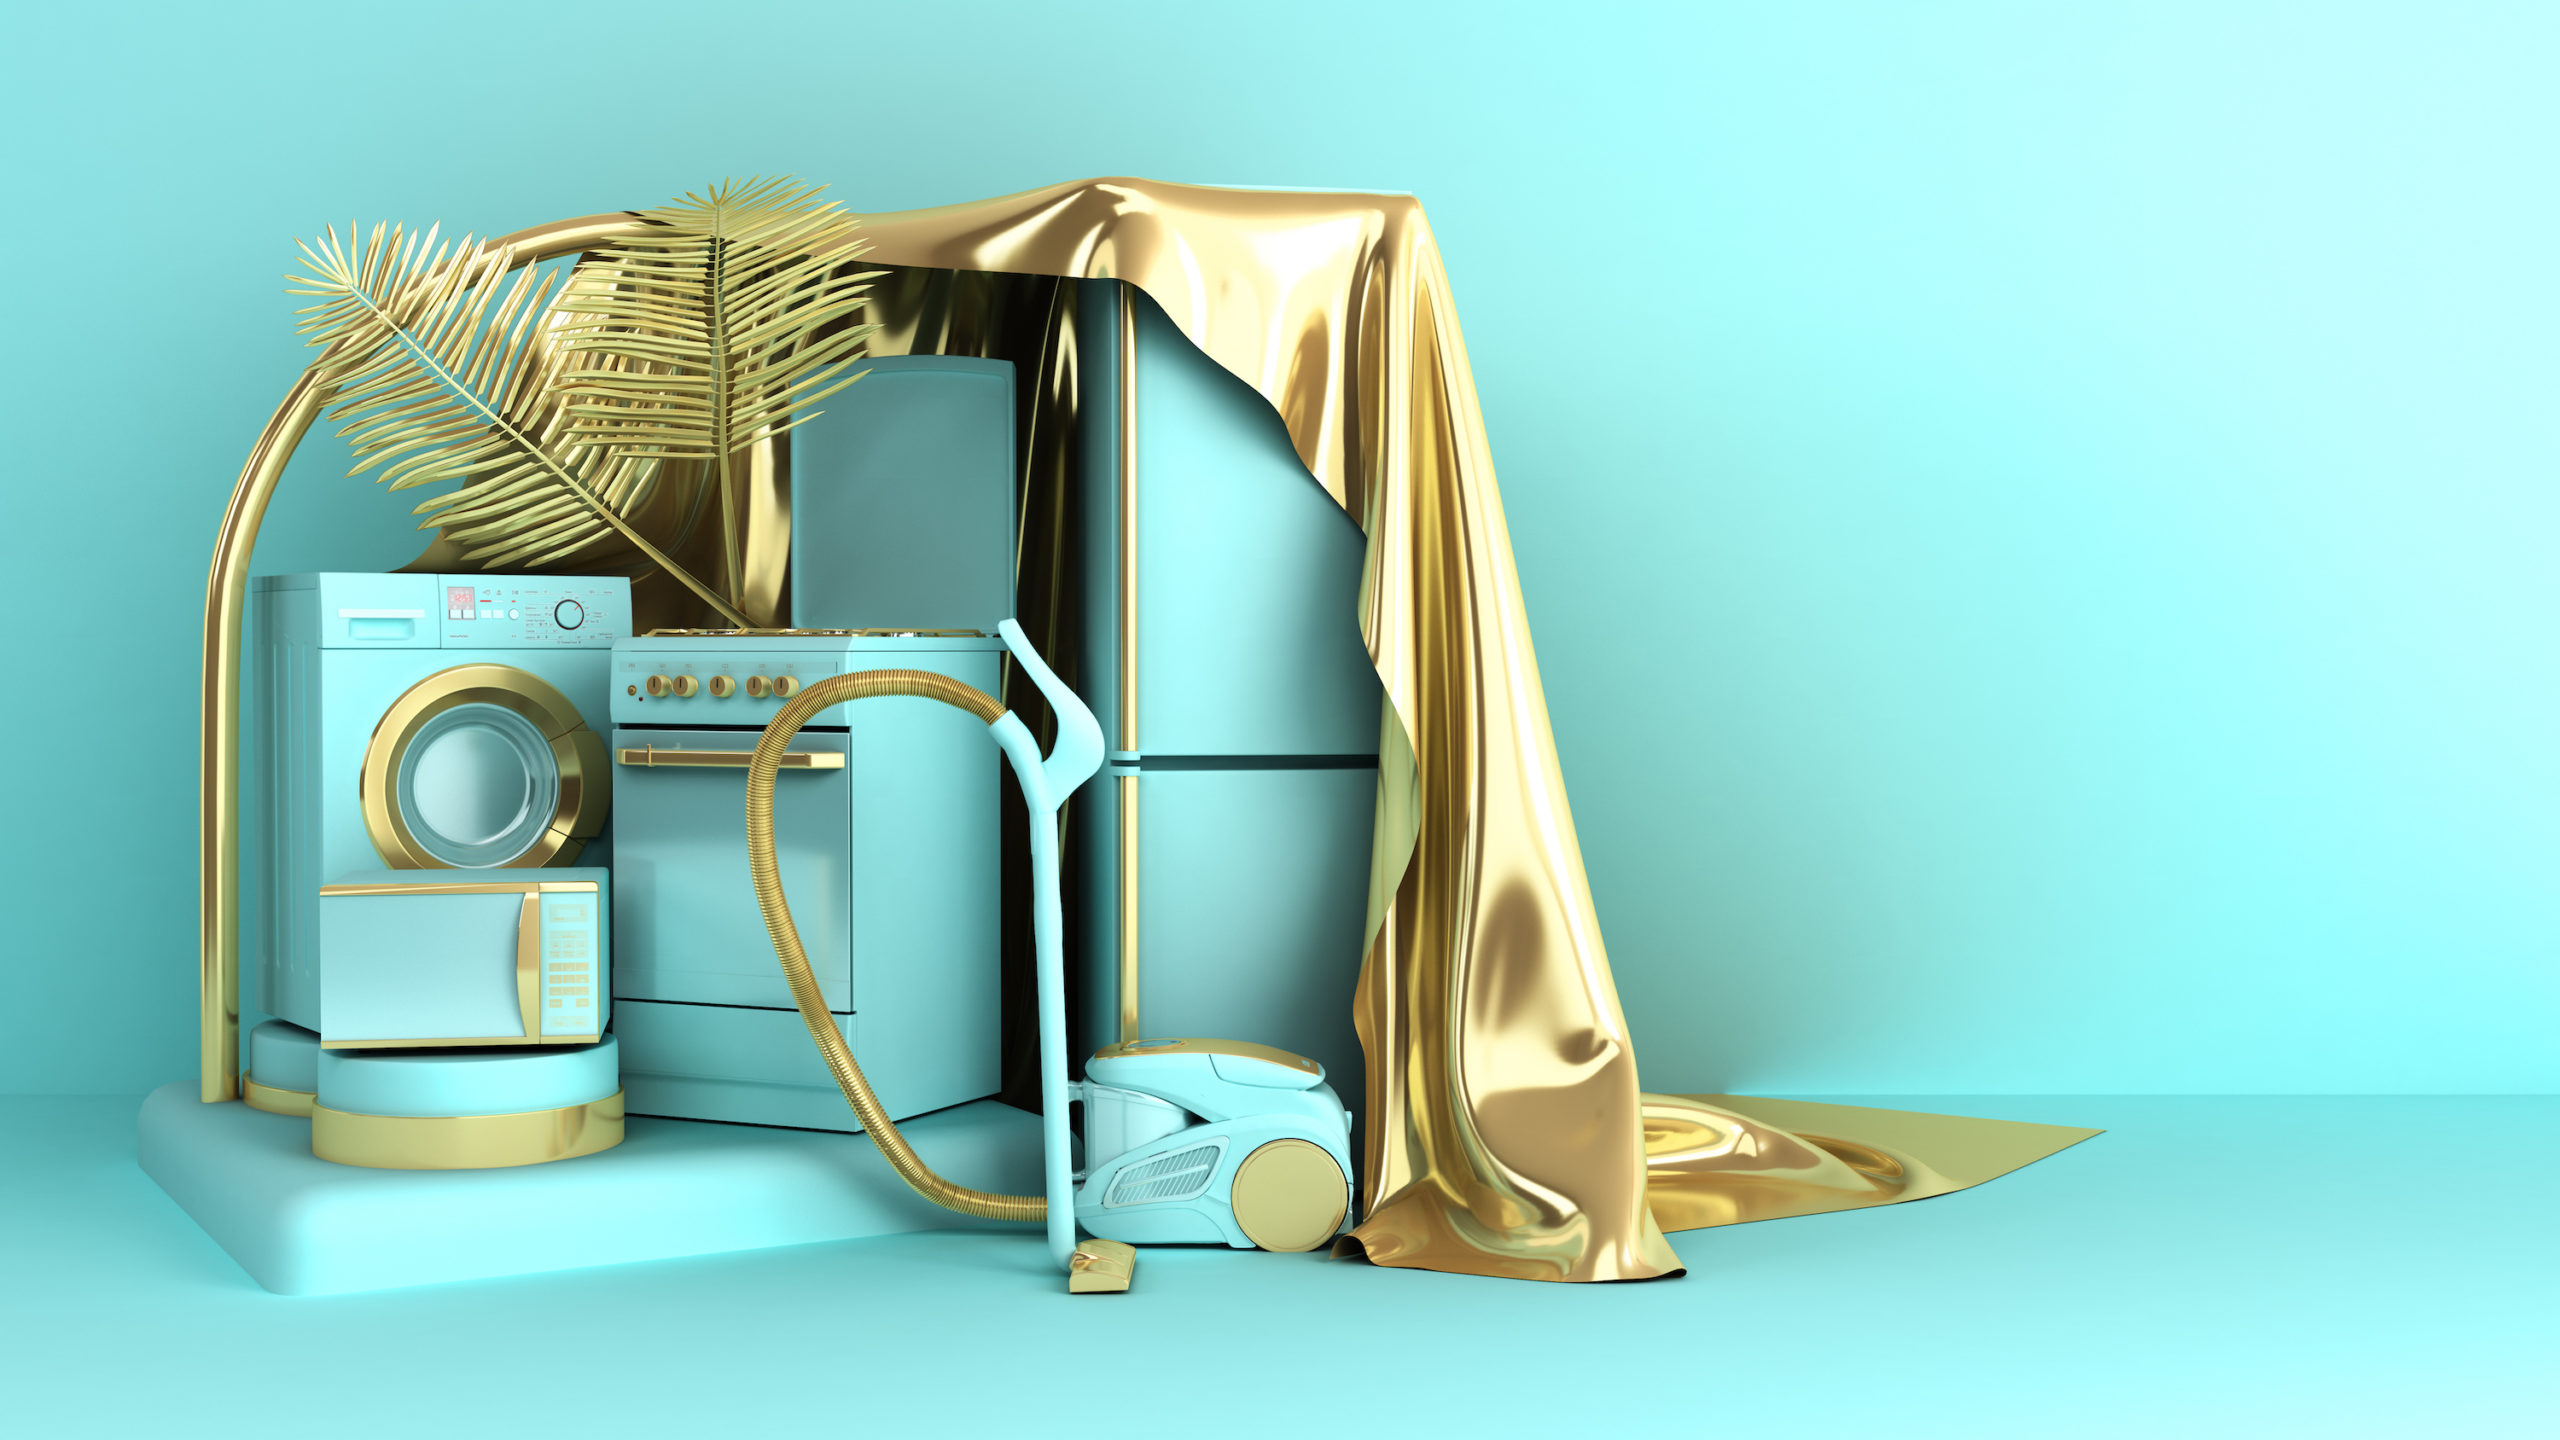 Minimal simple Home appliances background sales trade concept on pastel color background for copy space 3d rendering